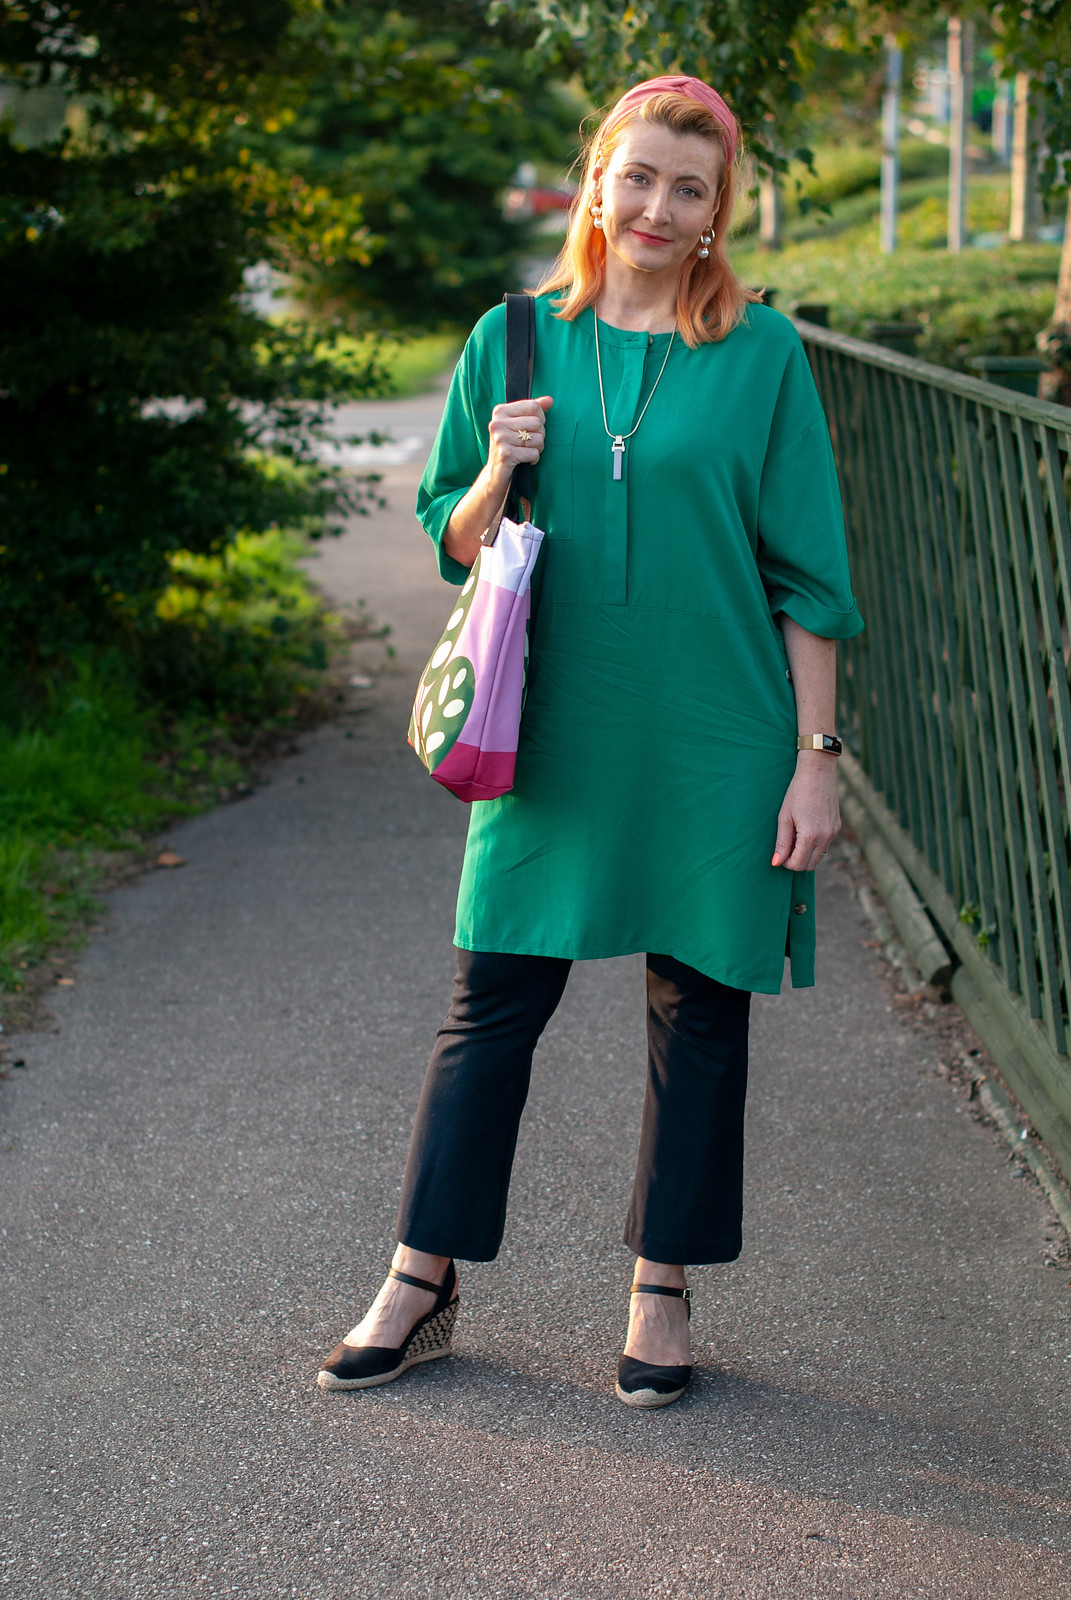 """Wearing a Colour I Don't Normally Wear: Emerald Green"" by Over 40 Blogger Not Dressed As Lamb (outfit of emerald green shift dress over black flare trousers \ black wedge espadrilles \ pink headband \ green on pink tote bag)"